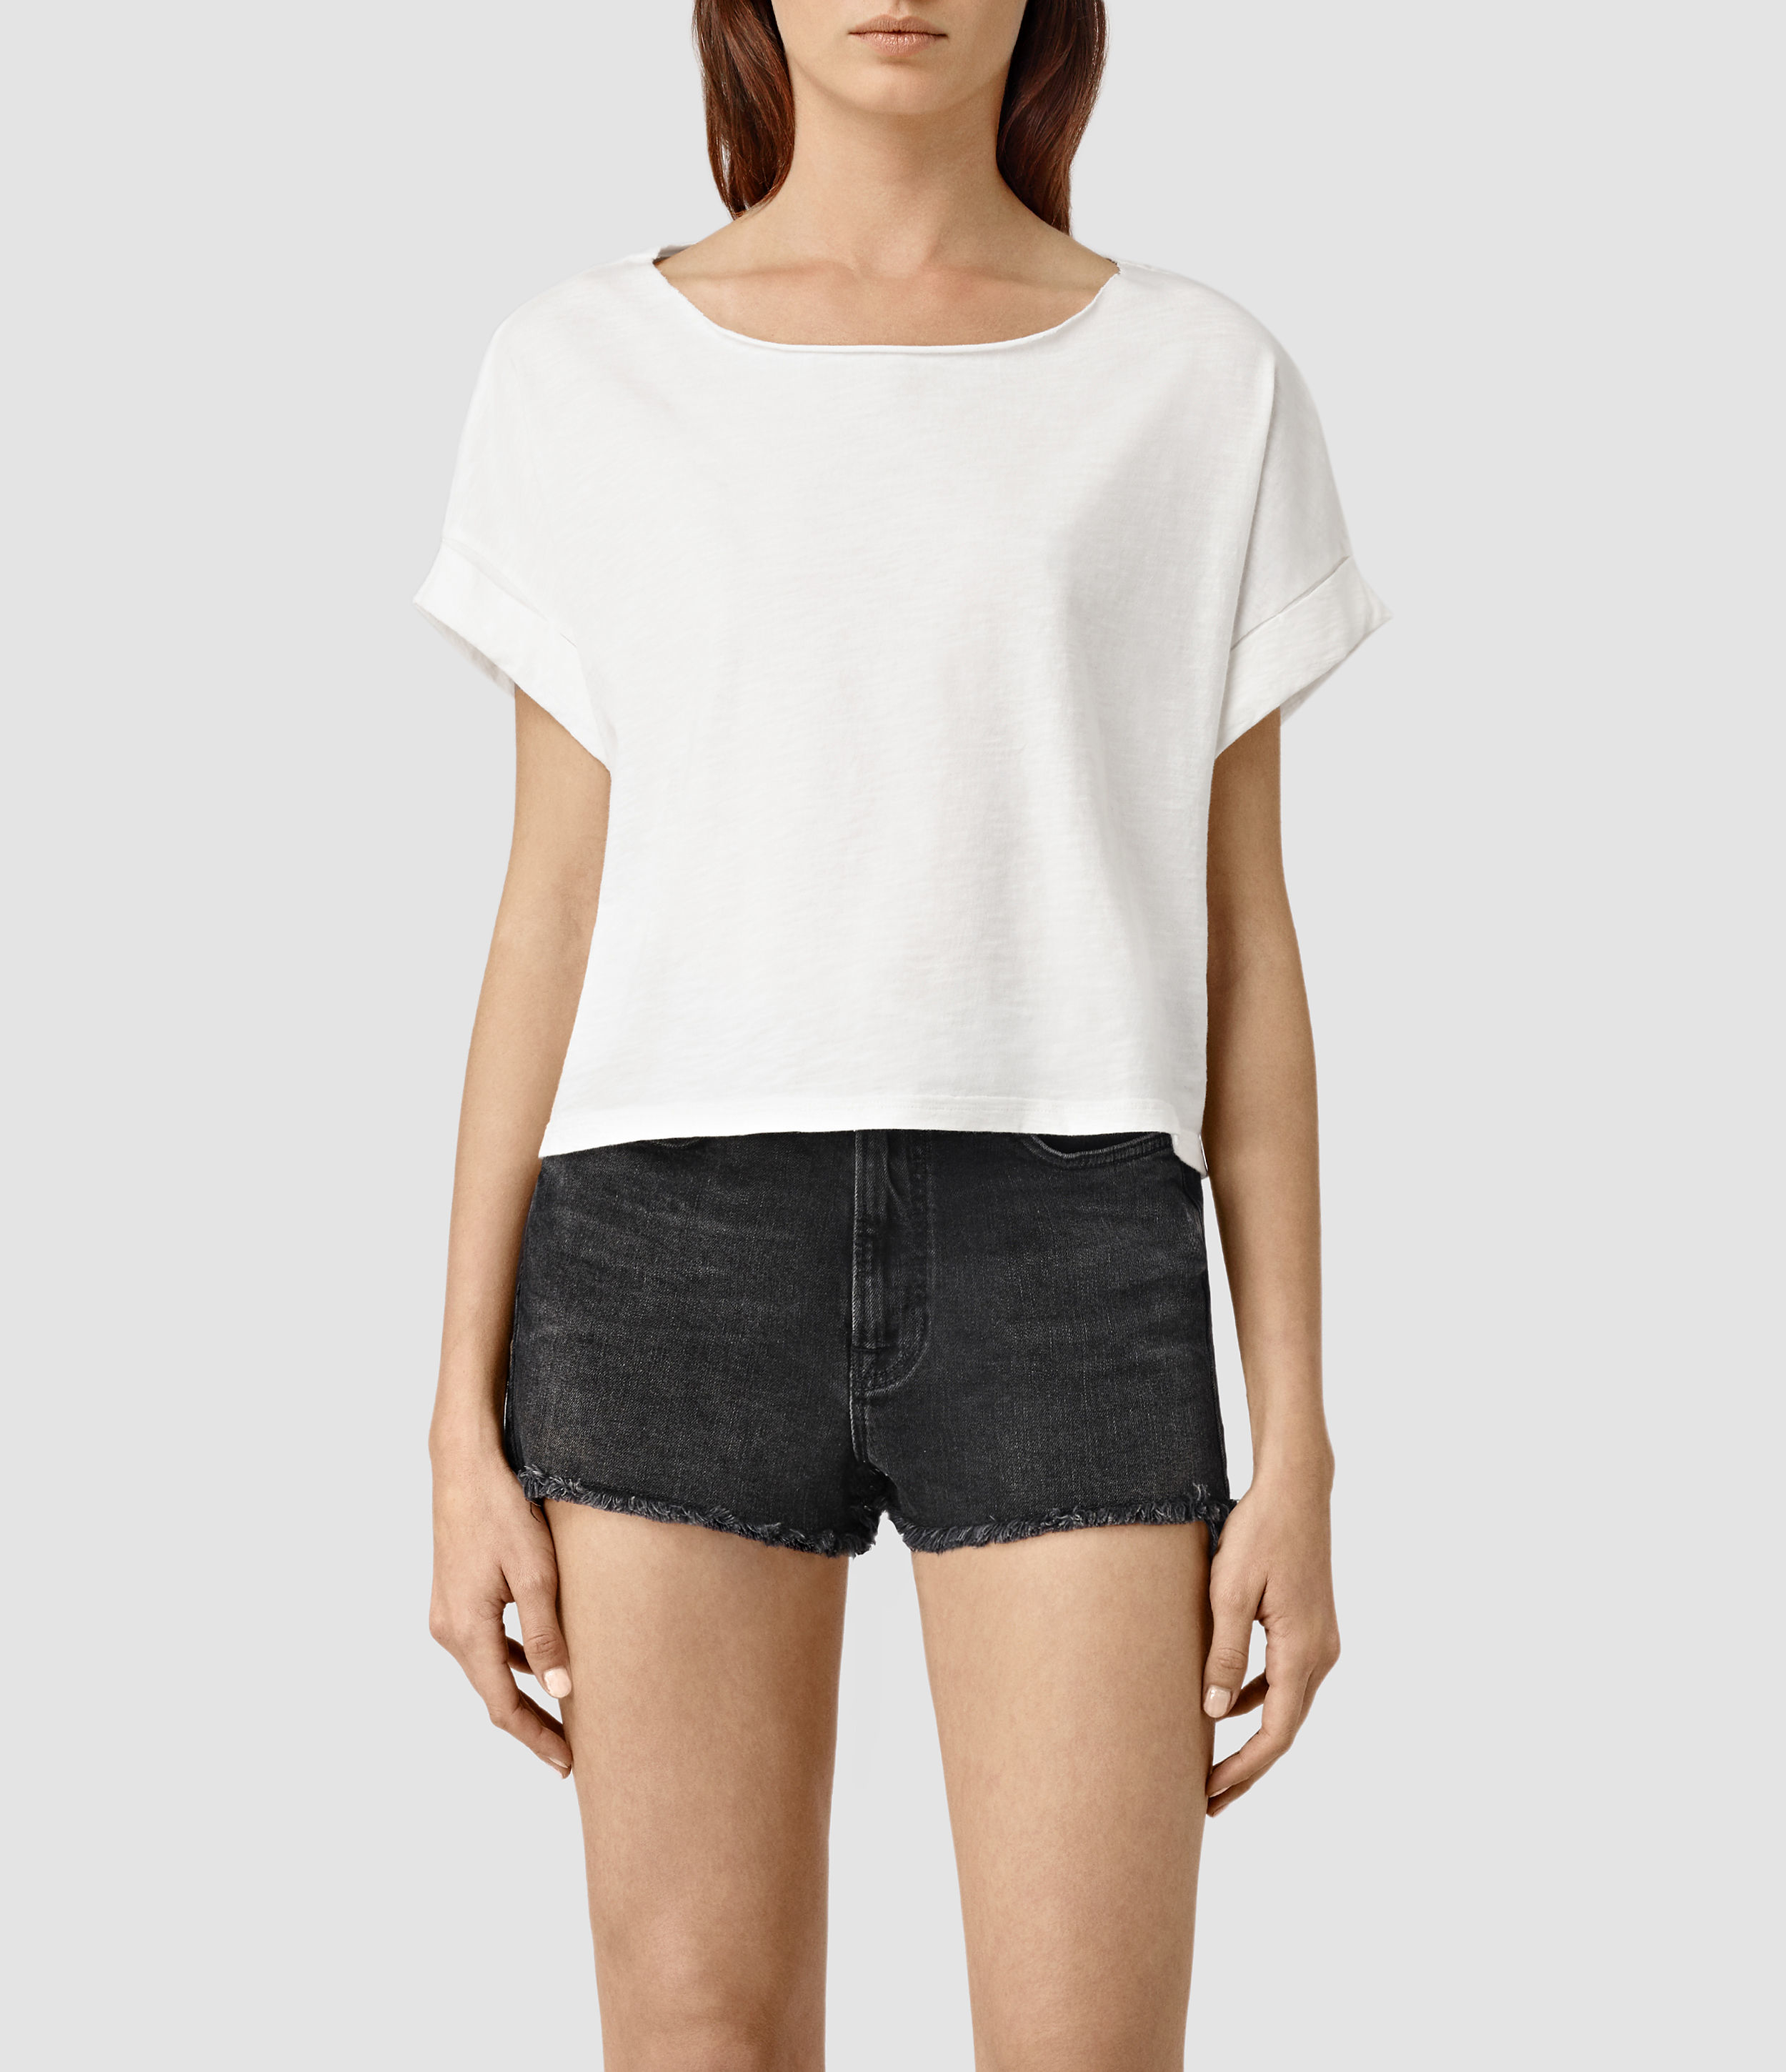 3a44c0713c AllSaints Tyler Cropped Tee in White - Lyst